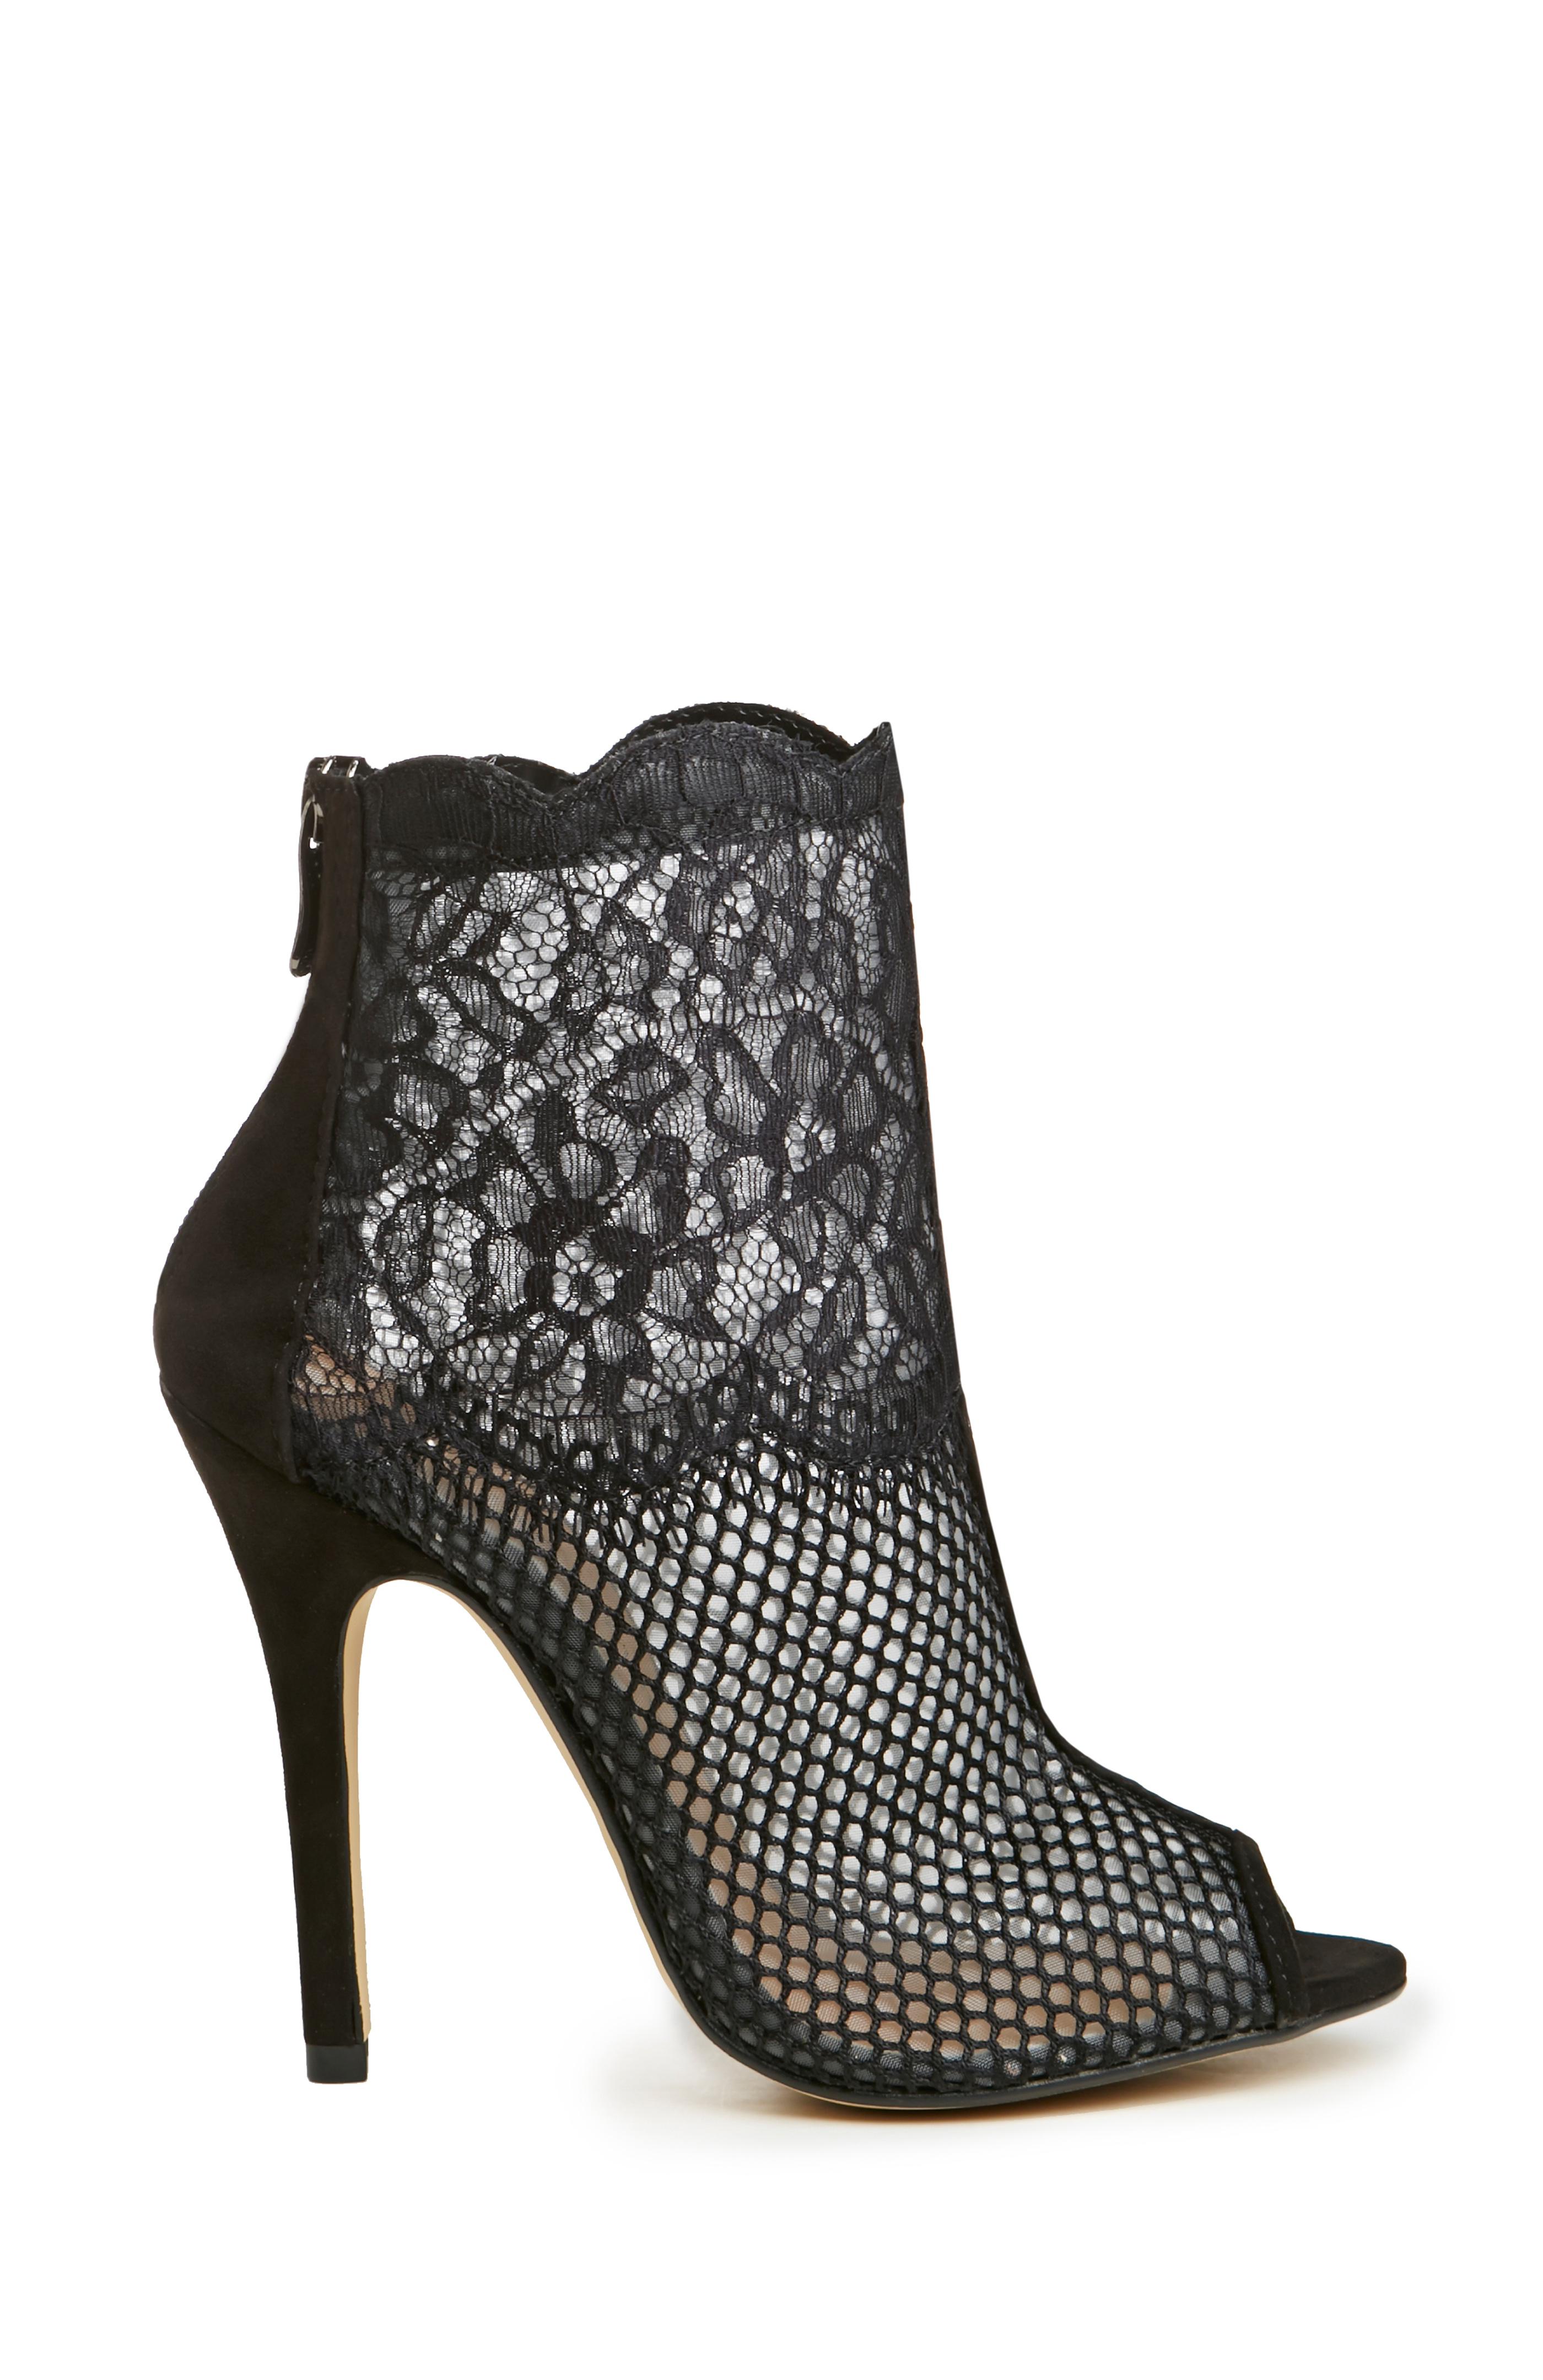 Chinese Laundry Lace Jeopardy Heels in Black   DAILYLOOK